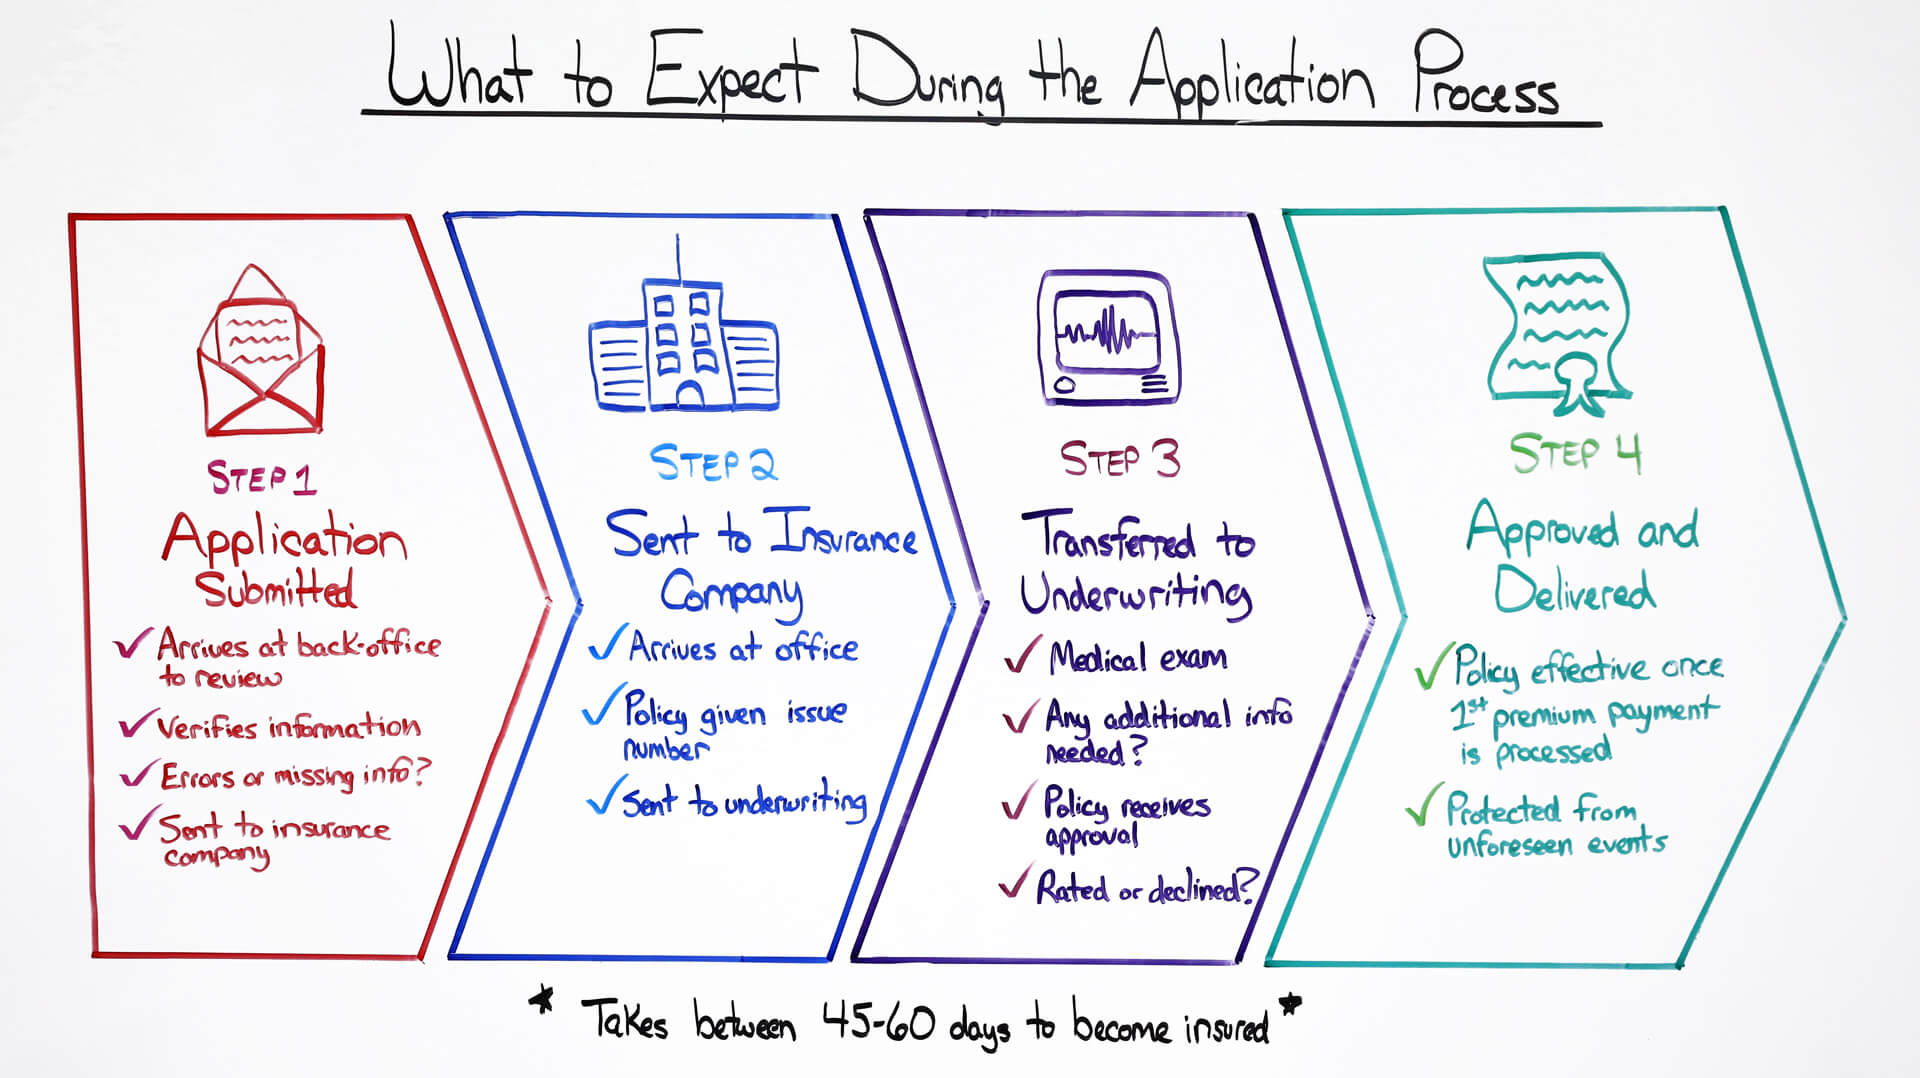 what to expect during the application process